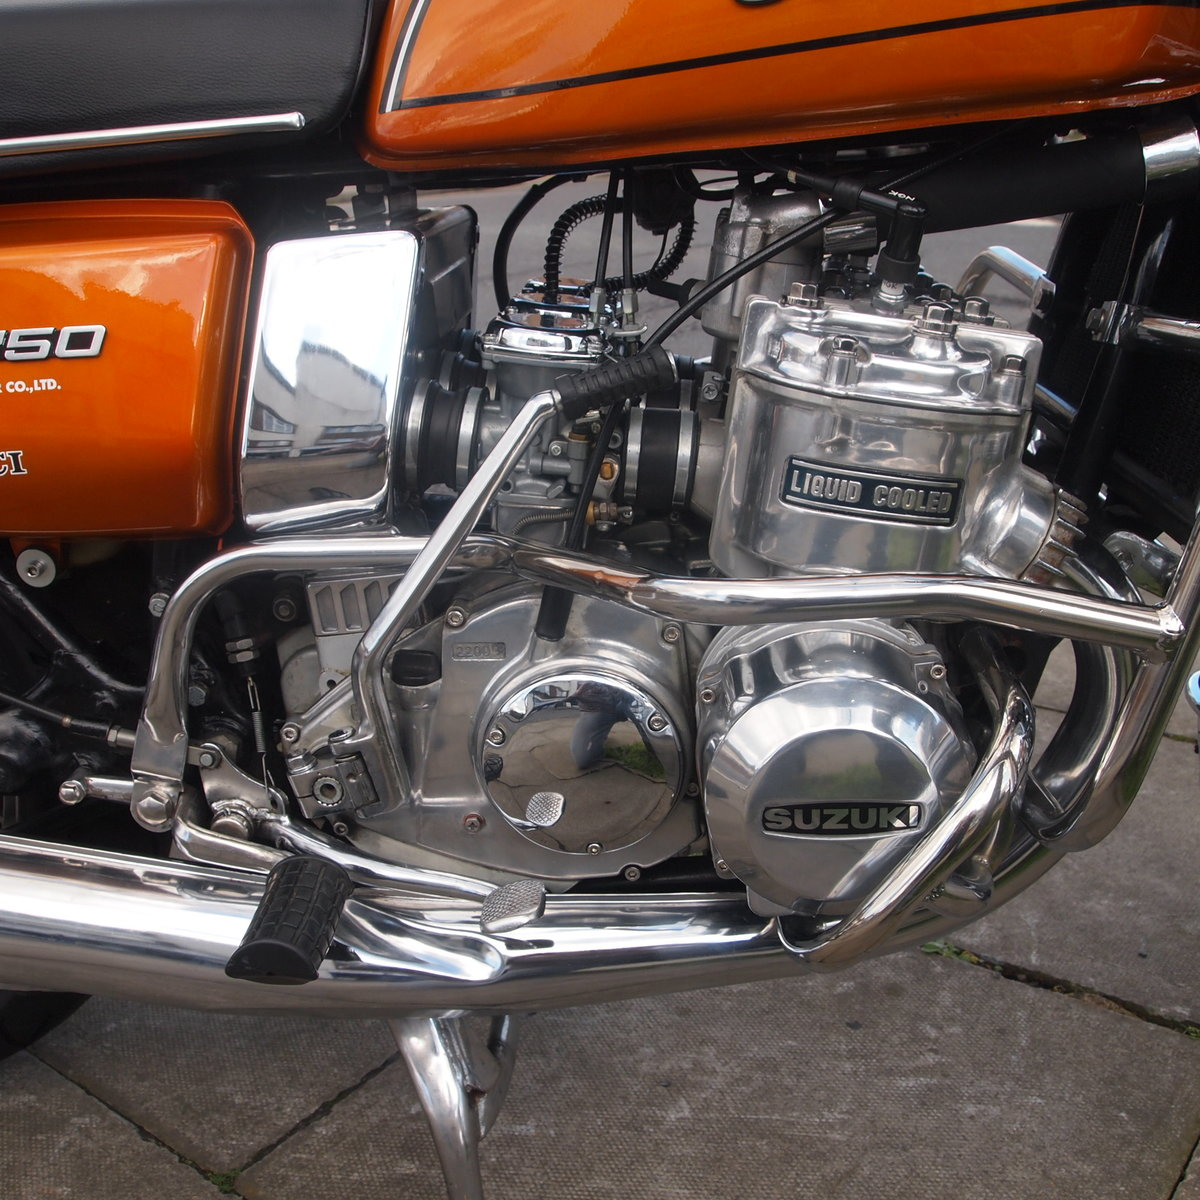 1976 Beautiful Suzuki GT750 Kettle With Period Accessories. SOLD (picture 5 of 6)